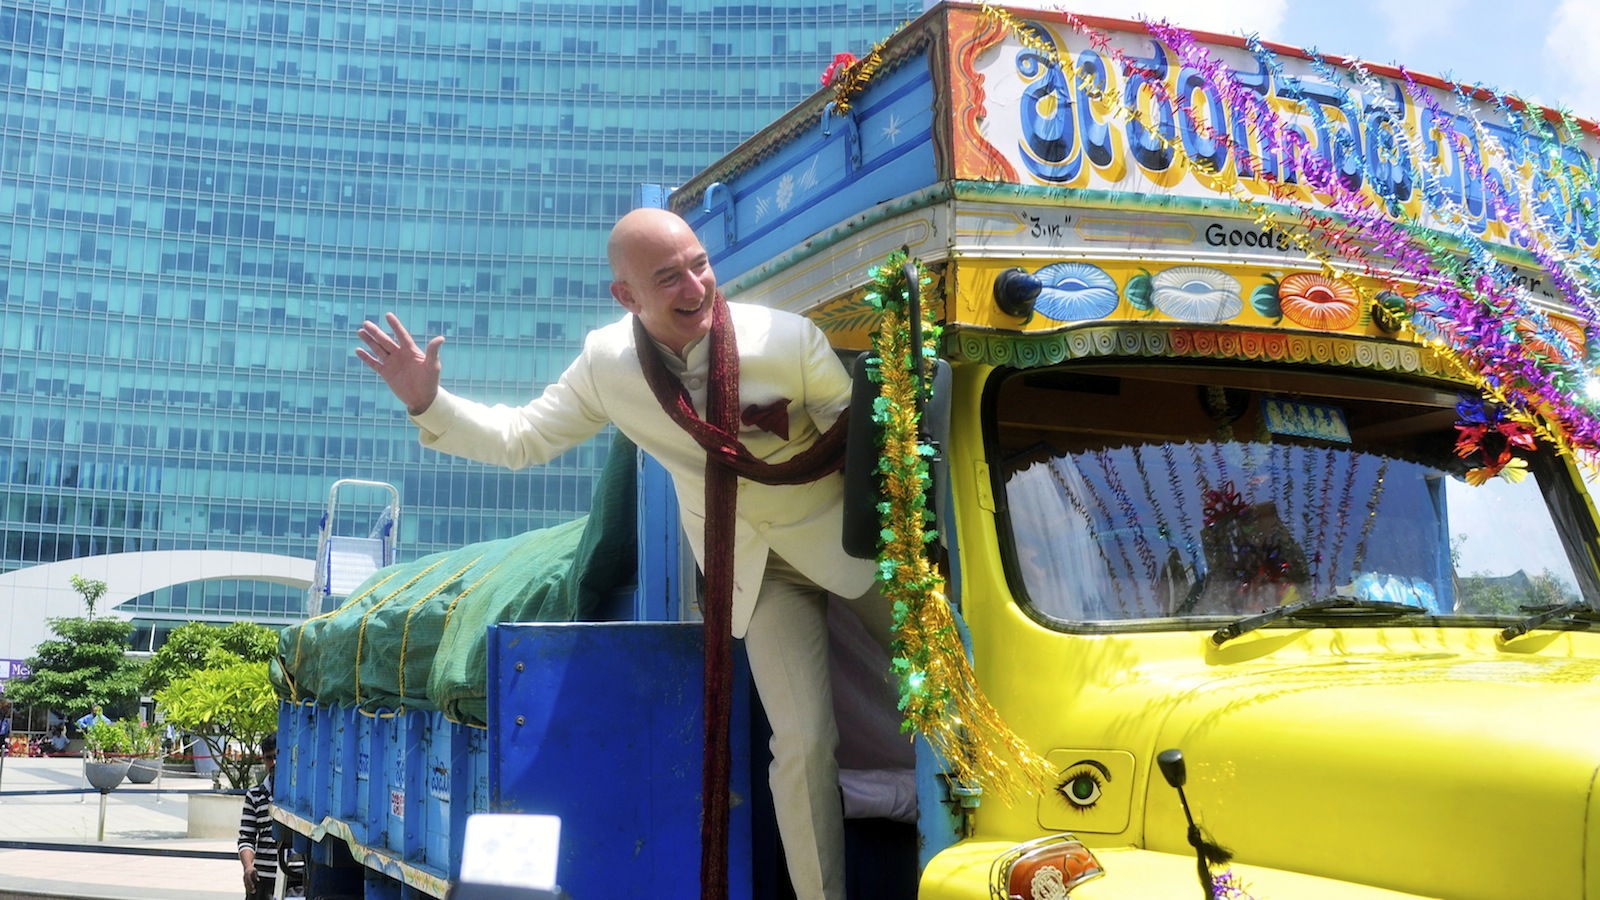 Jeff Bezos, founder and CEO of Amazon, poses as he stands on a supply truck during a photo opportunity at the premises of a shopping mall in the southern Indian city of Bangalore September 28, 2014. REUTERS/Abhishek N. Chinnappa